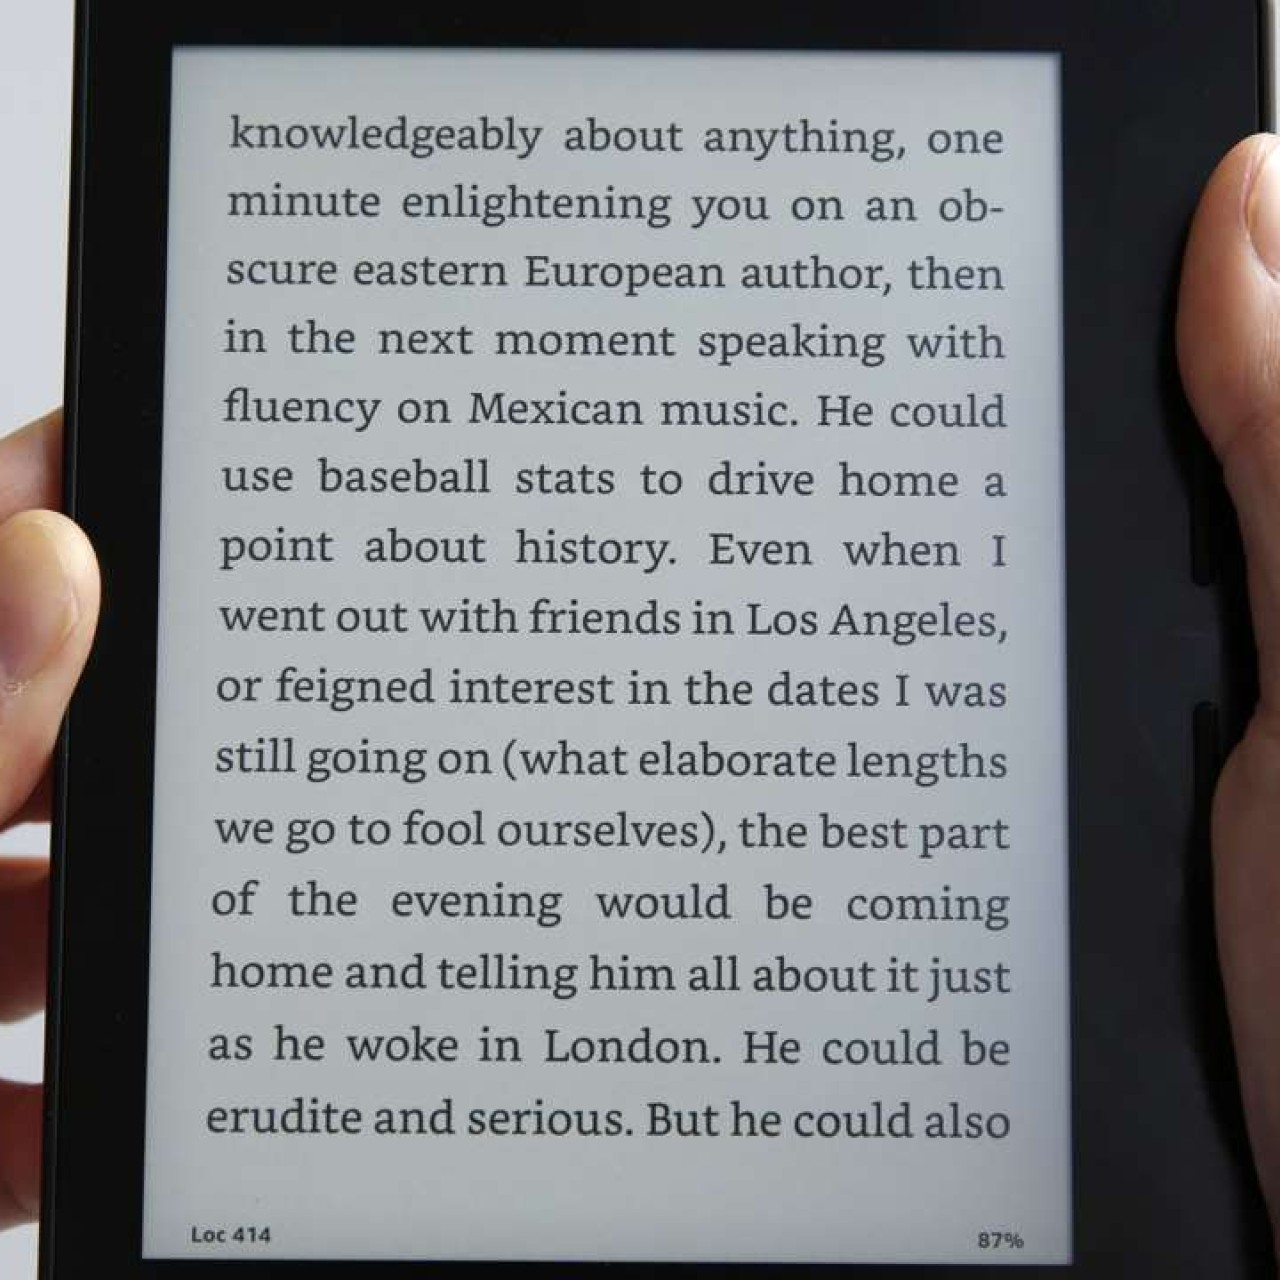 Review: Kindle Oasis aimed at avid readers, but pricey for others